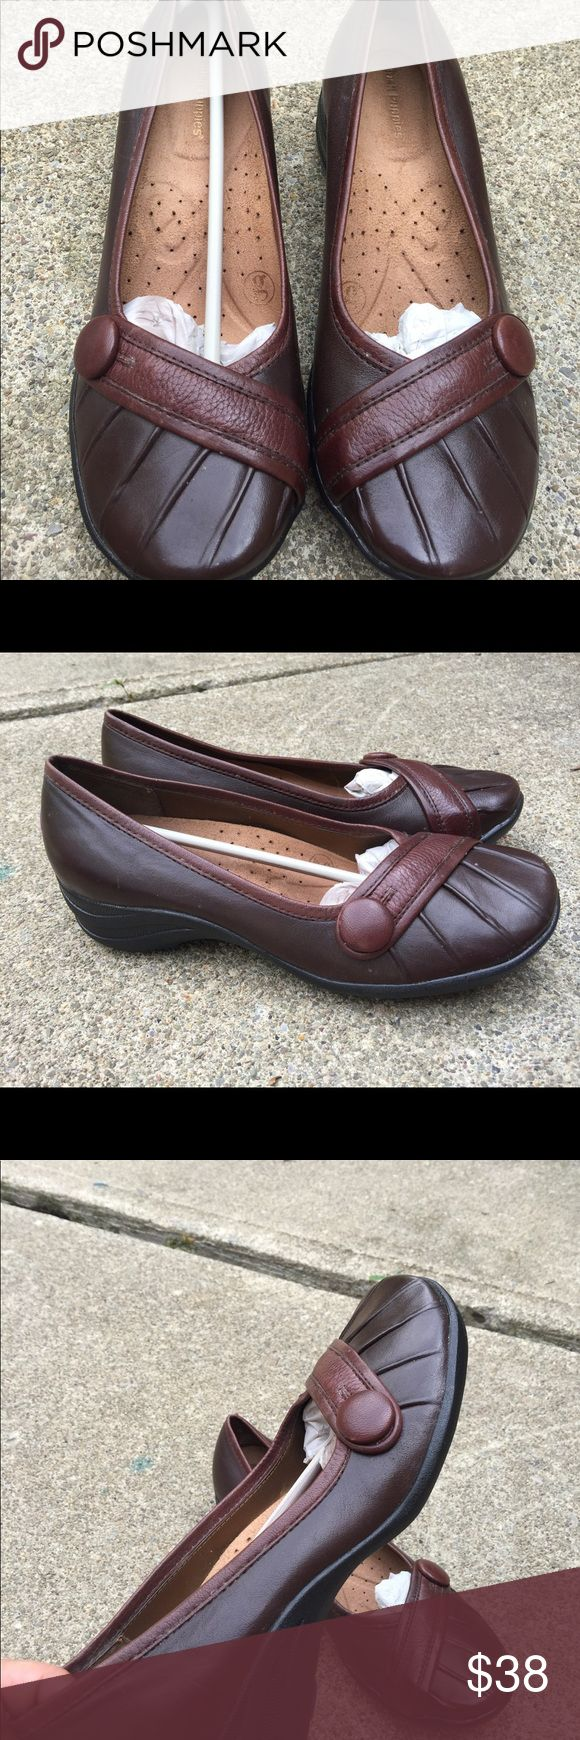 Women's Hush Puppies Brown Leather Shoes Size 7W Women's Hush Puppies Brown Leather Shoes Size 7W. NWOT. #3 Hush Puppies Shoes Flats & Loafers